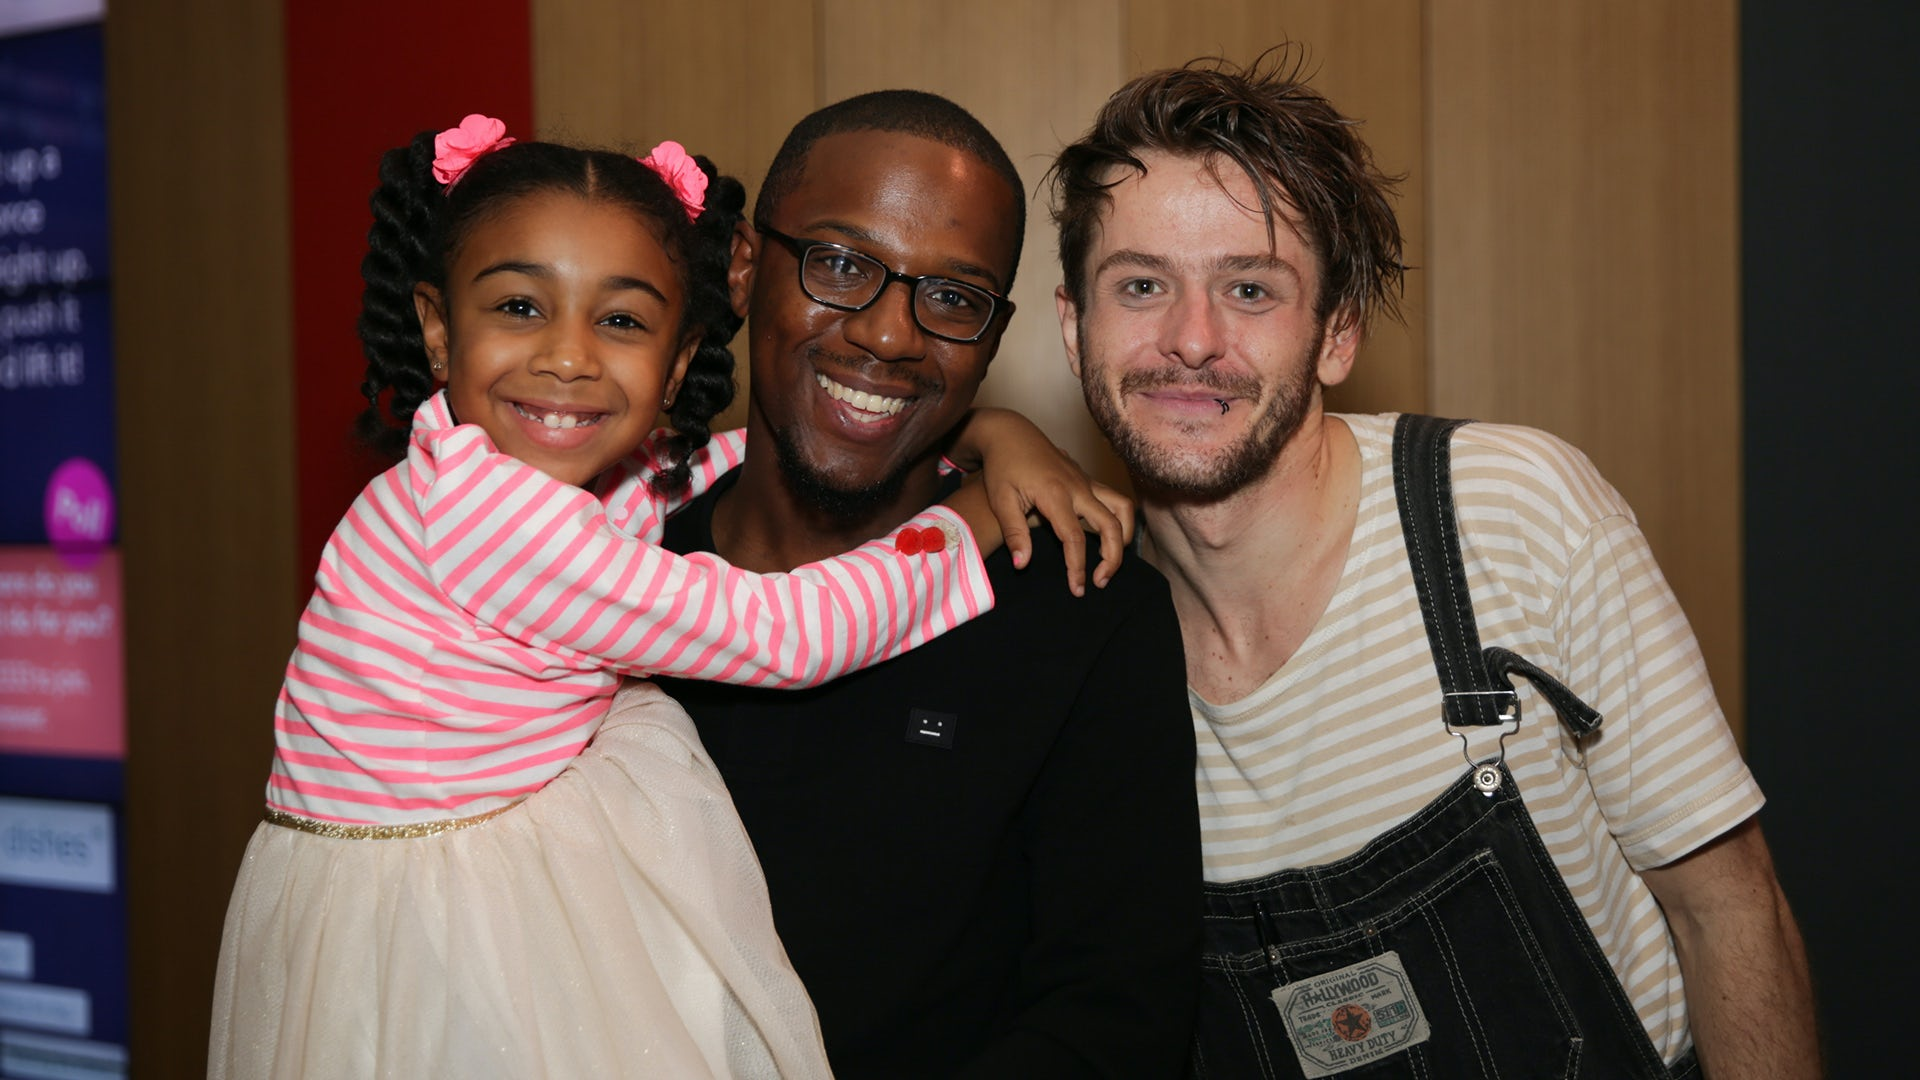 Smiling dad and daughter pose for a post-show photo with a cast member.